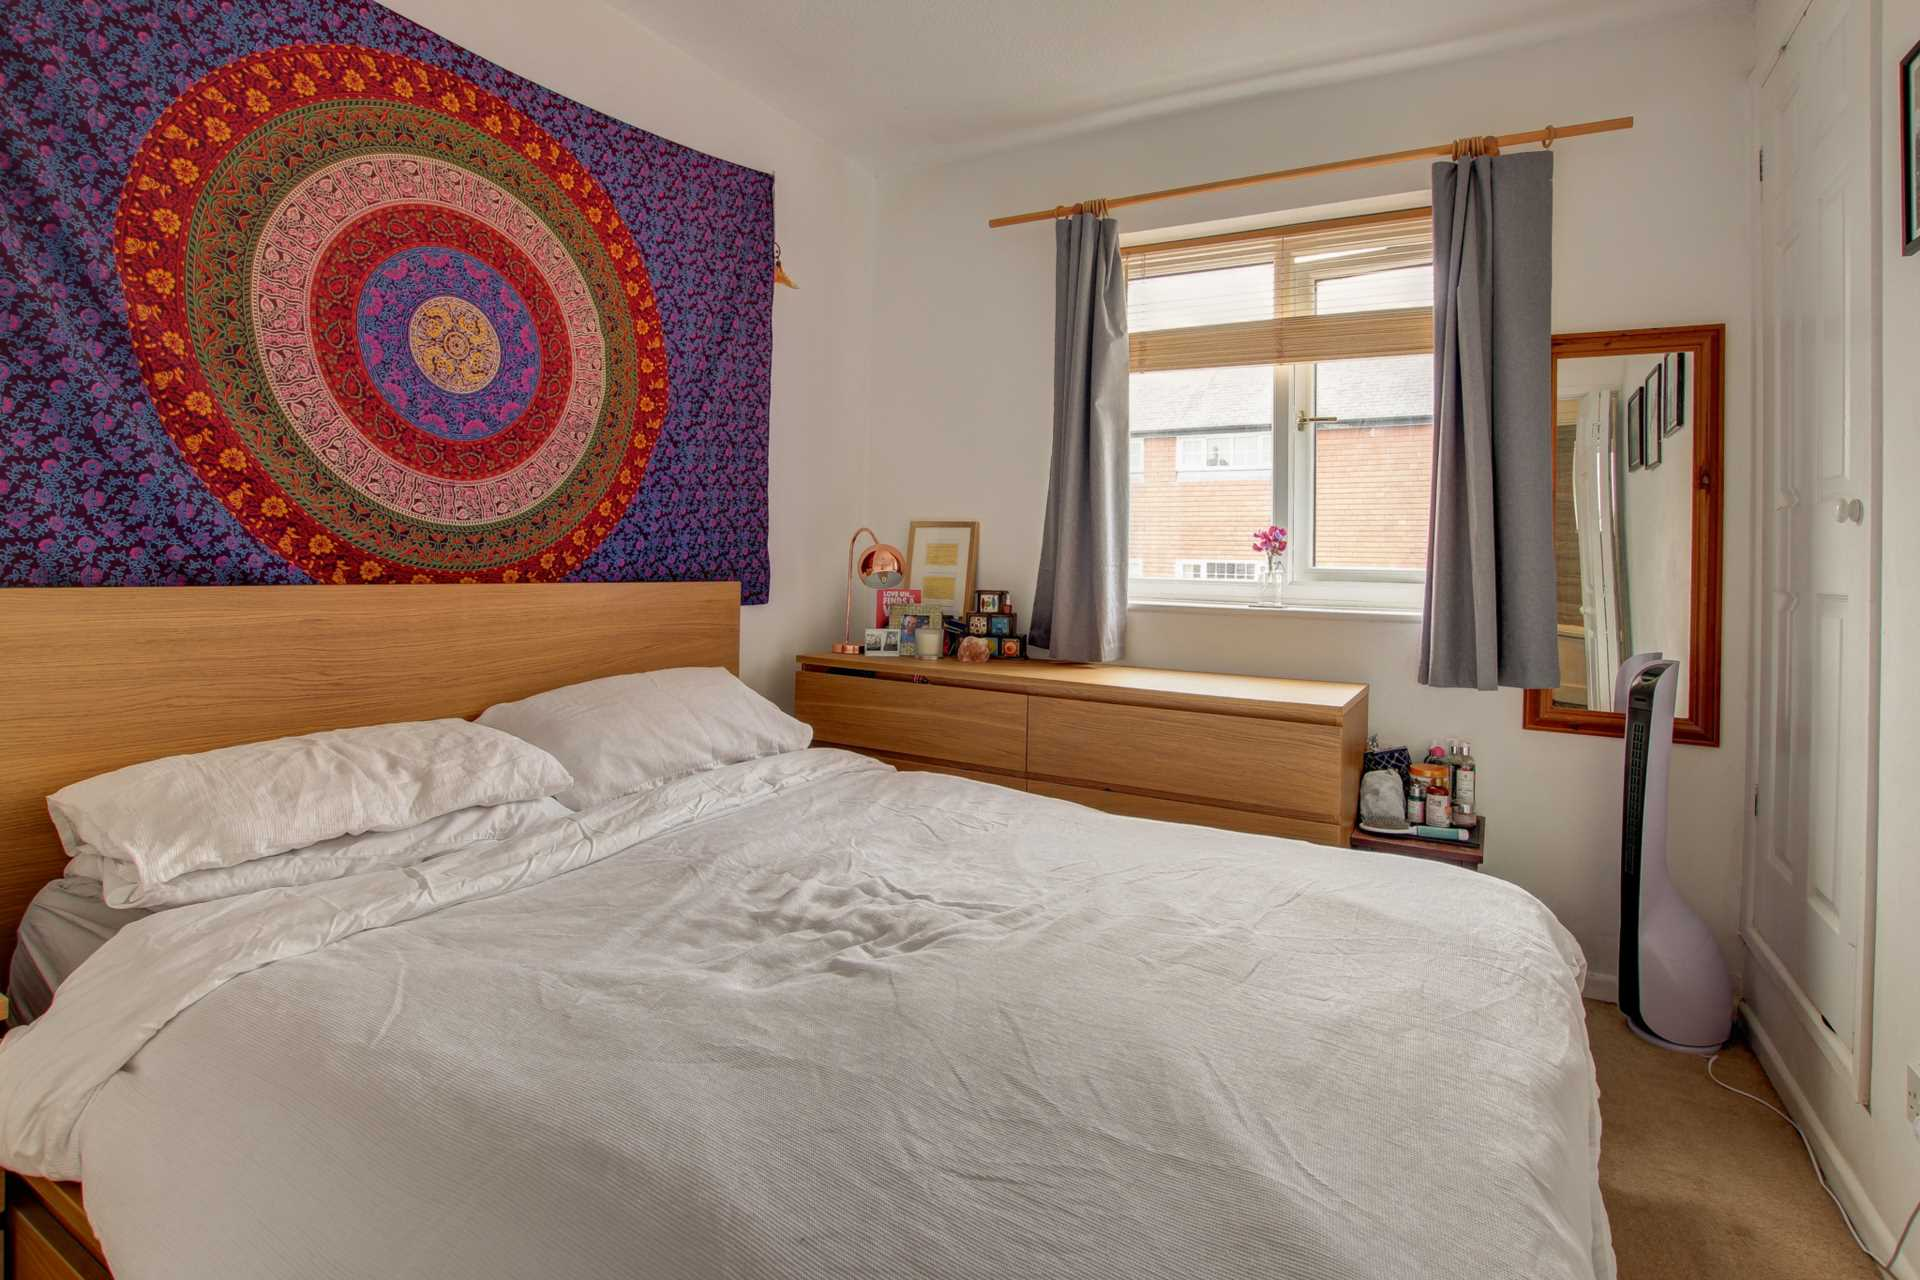 2 bed end of terrace house for sale in The Mews, Shorts Lane, Blandford Forum, Blandford Forum 4